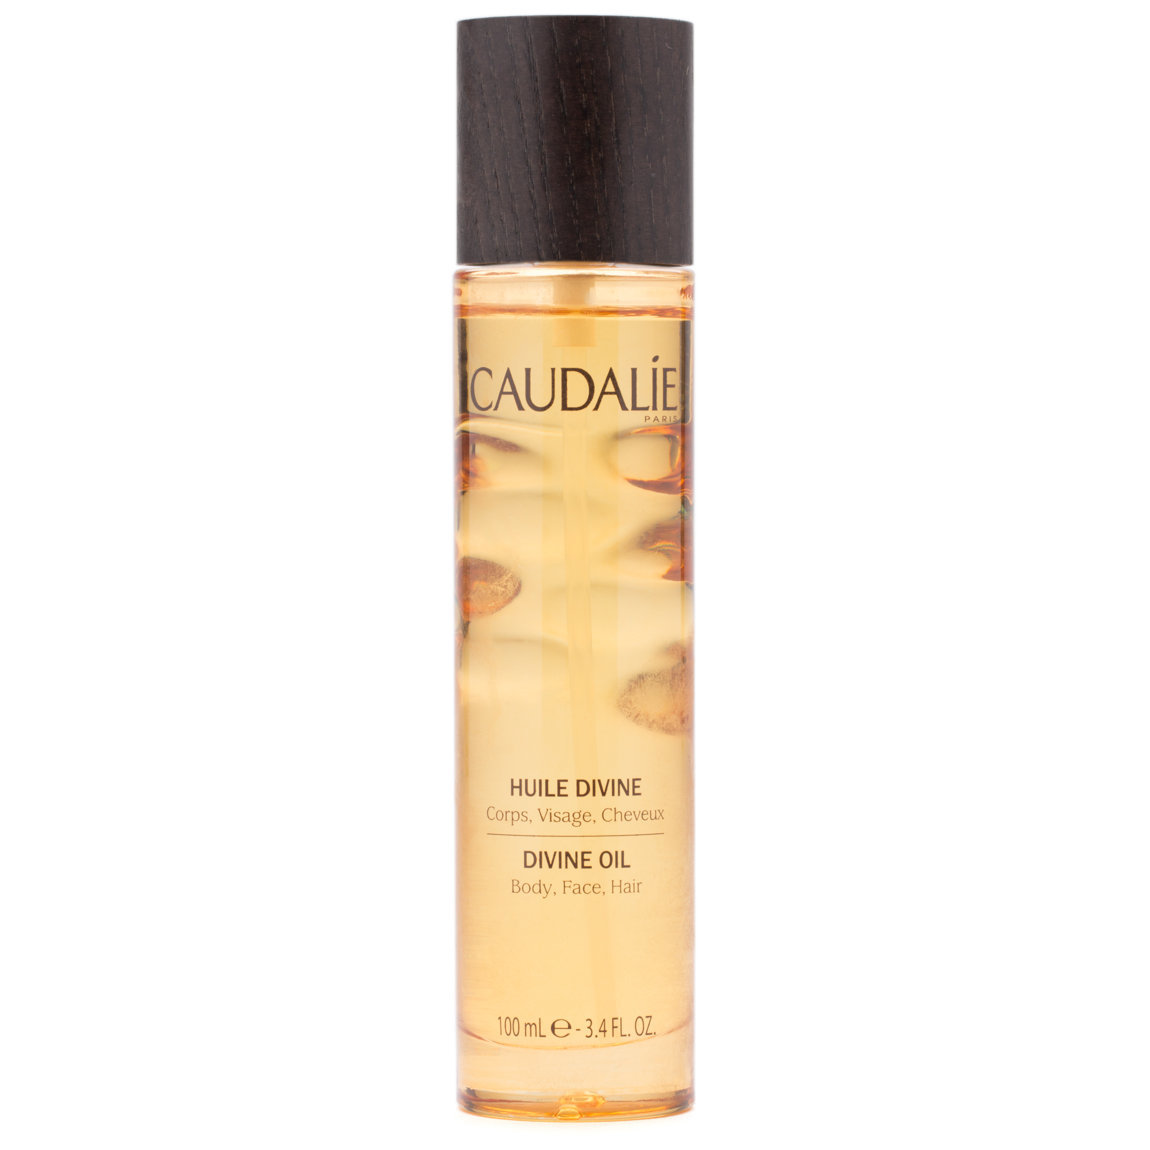 Caudalie Divine Oil 100 ml alternative view 1 - product swatch.